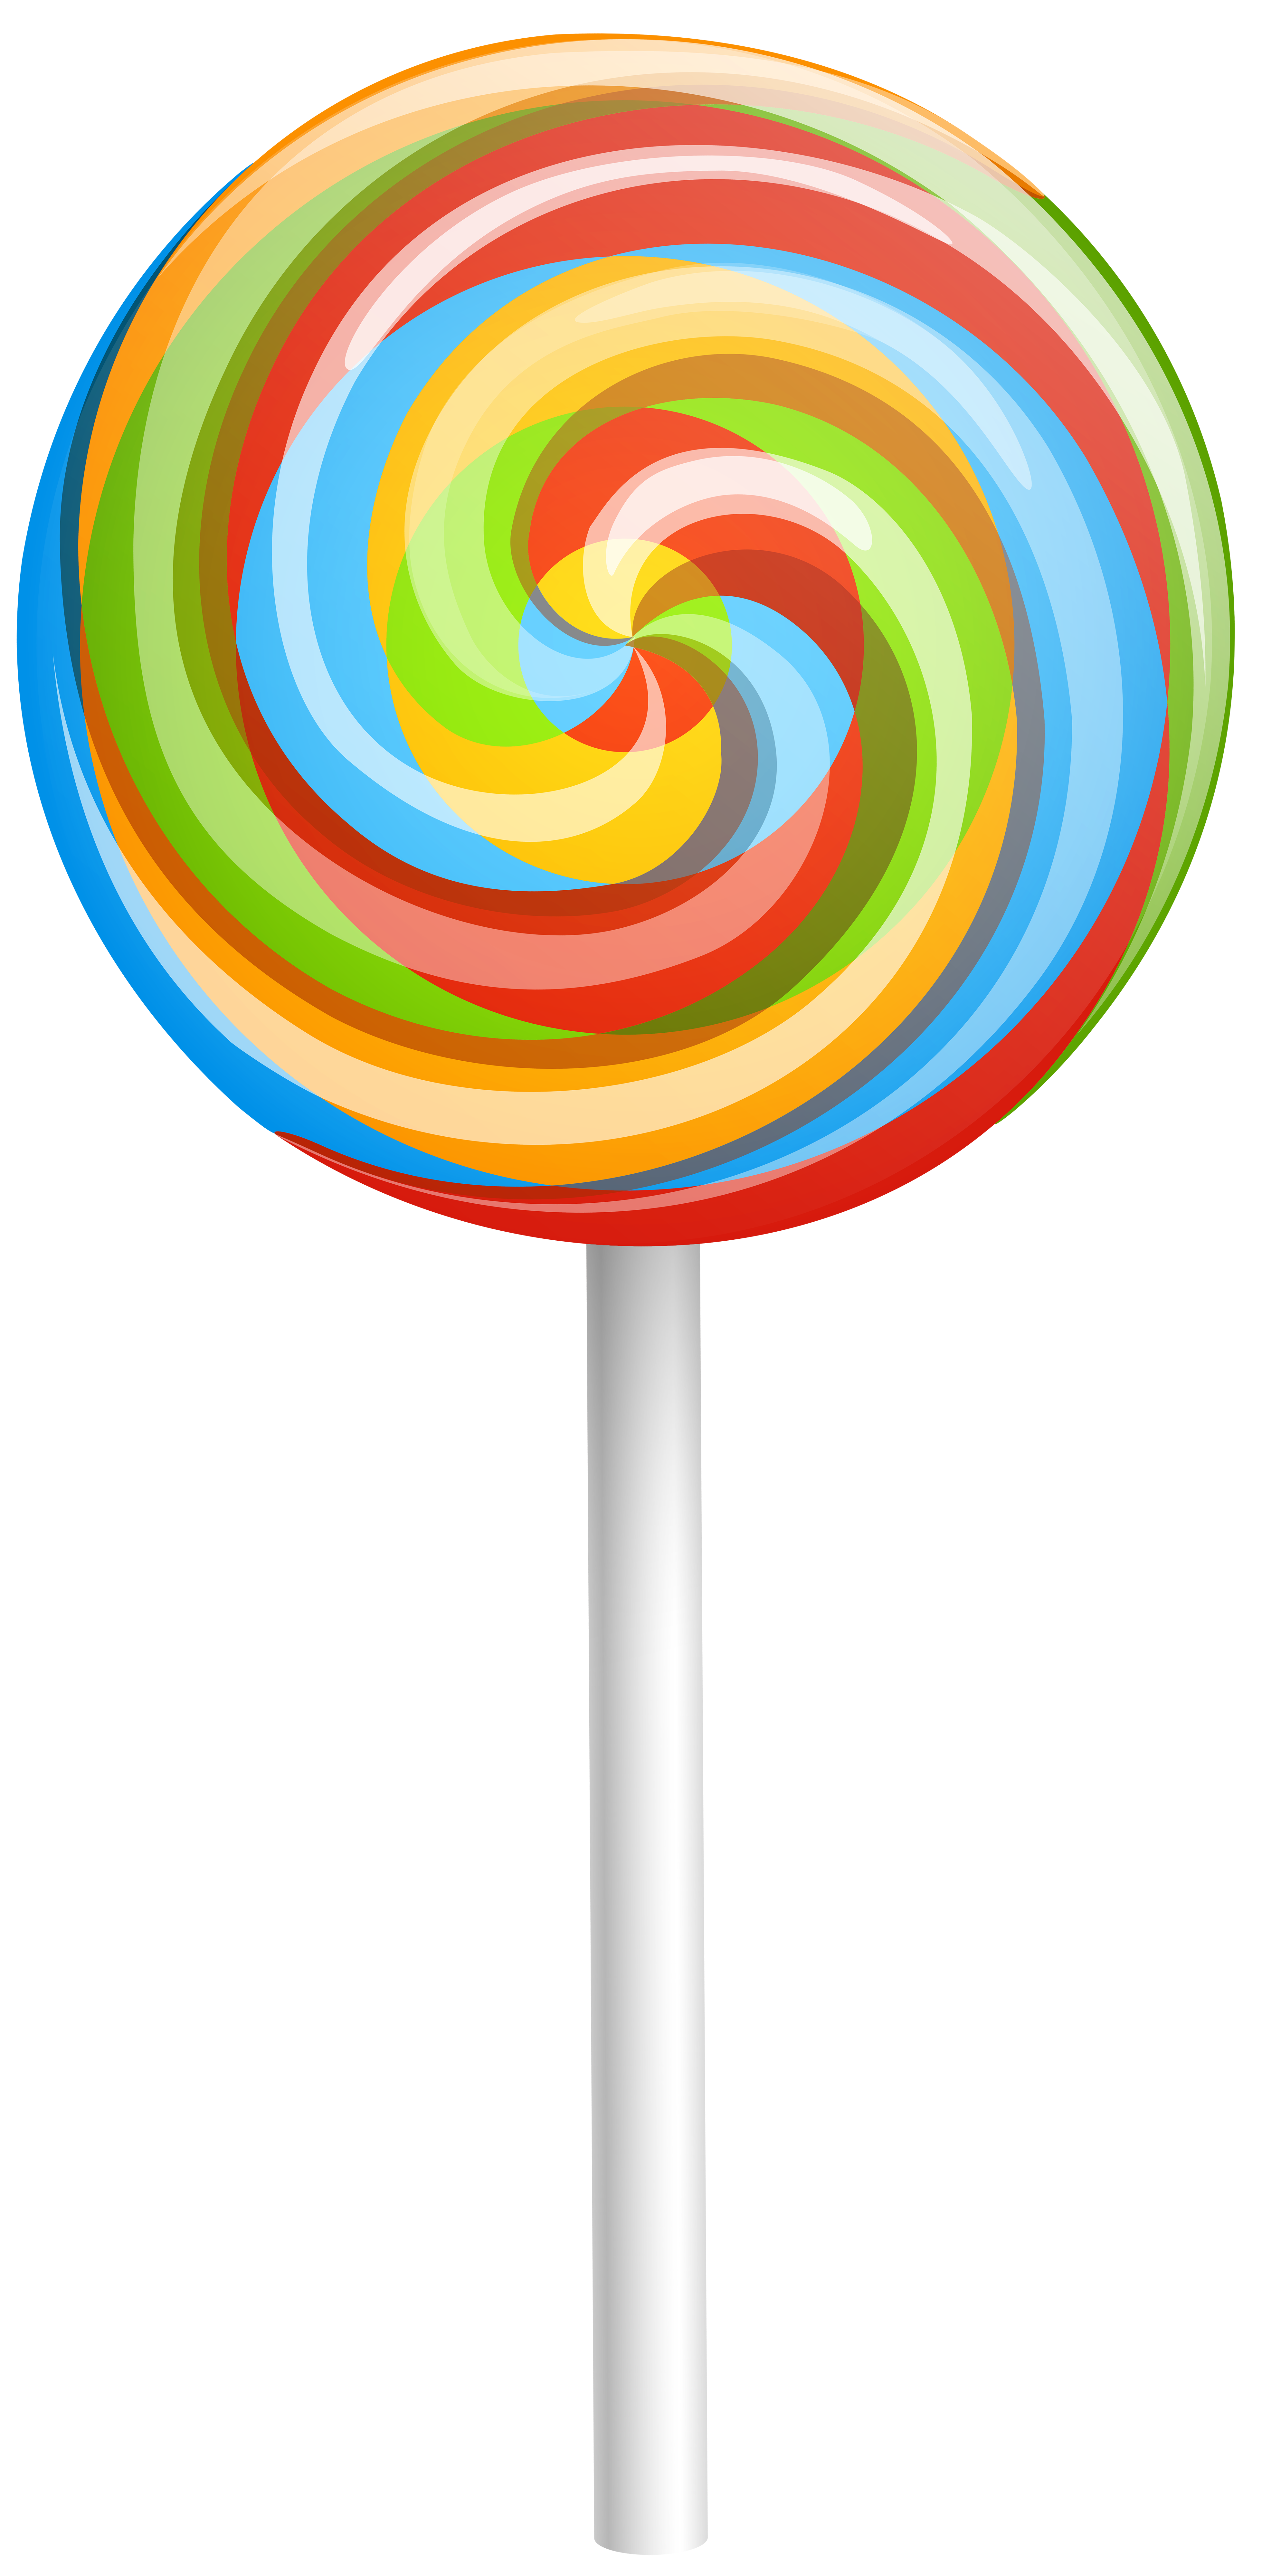 Playdough clipart uncooked. Swirl candy cliparts free